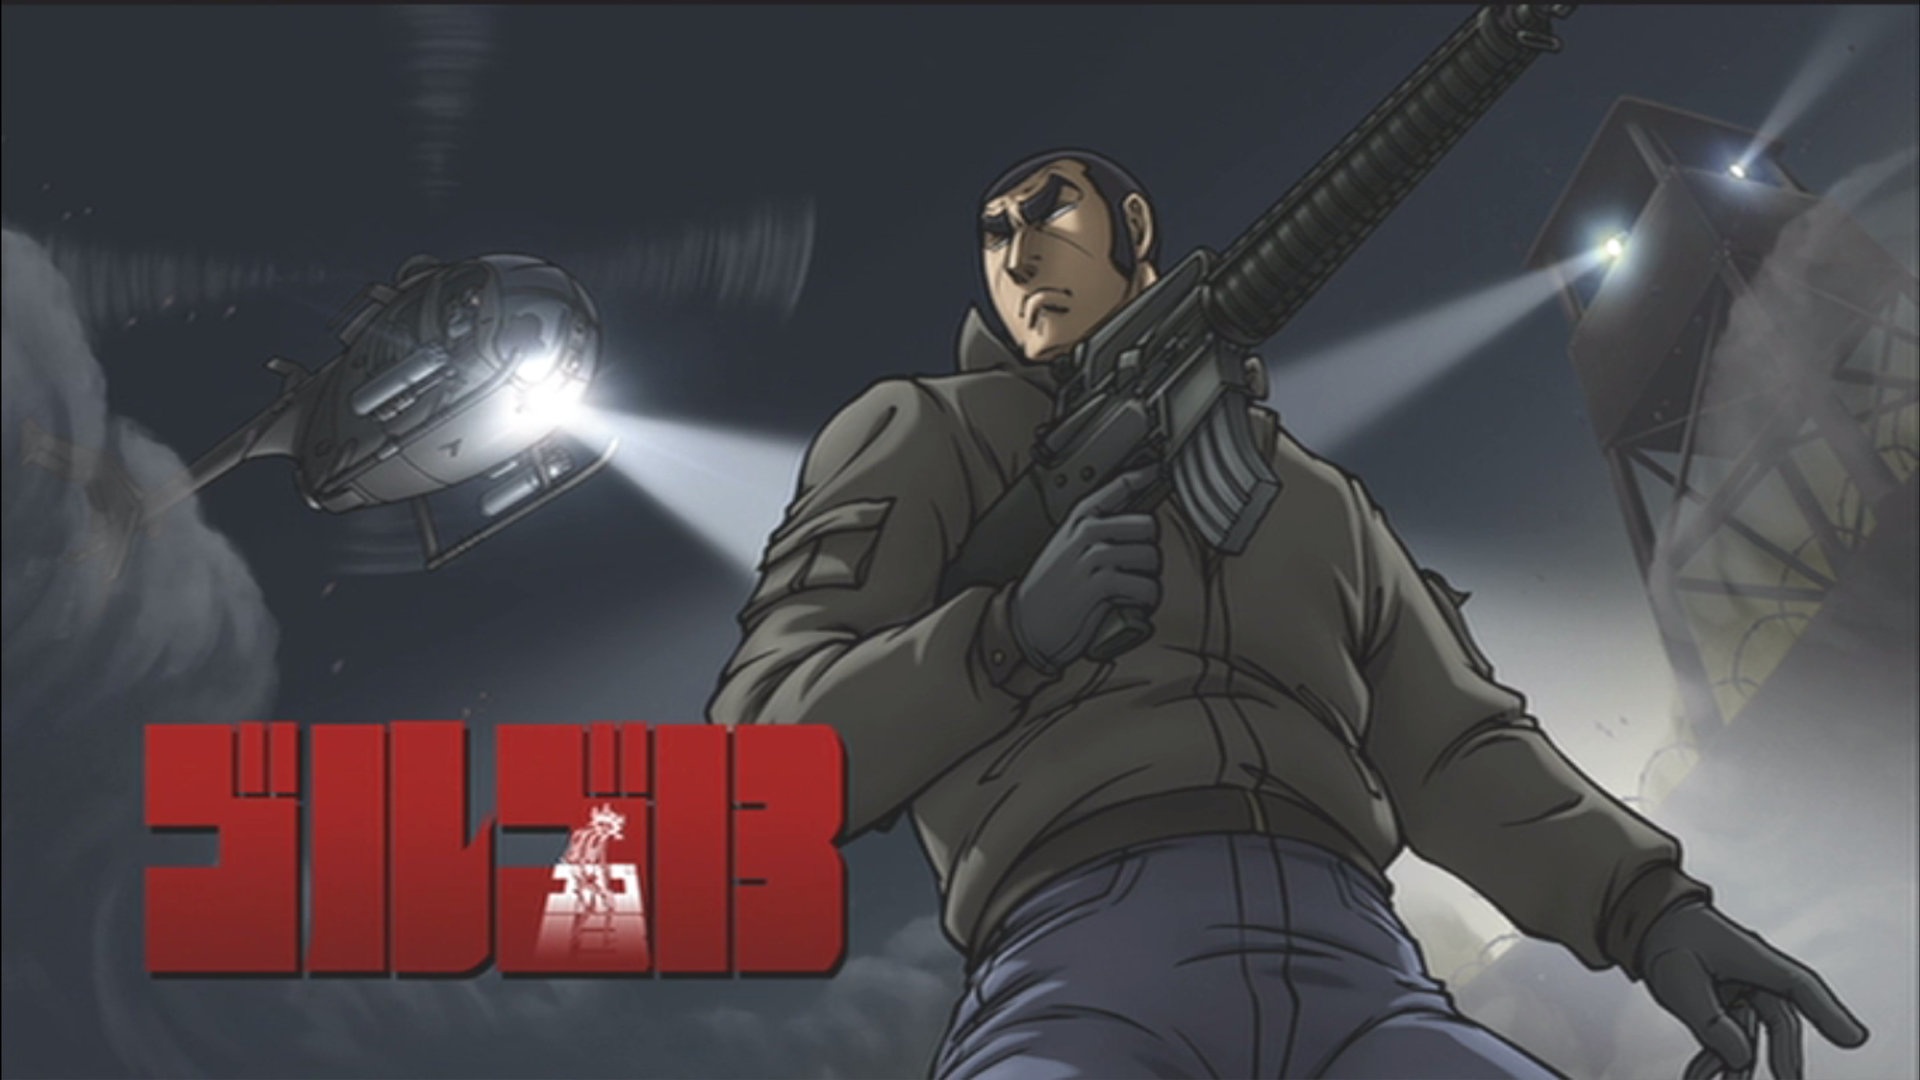 Download full hd 1080p Golgo 13 computer wallpaper ID:144504 for free